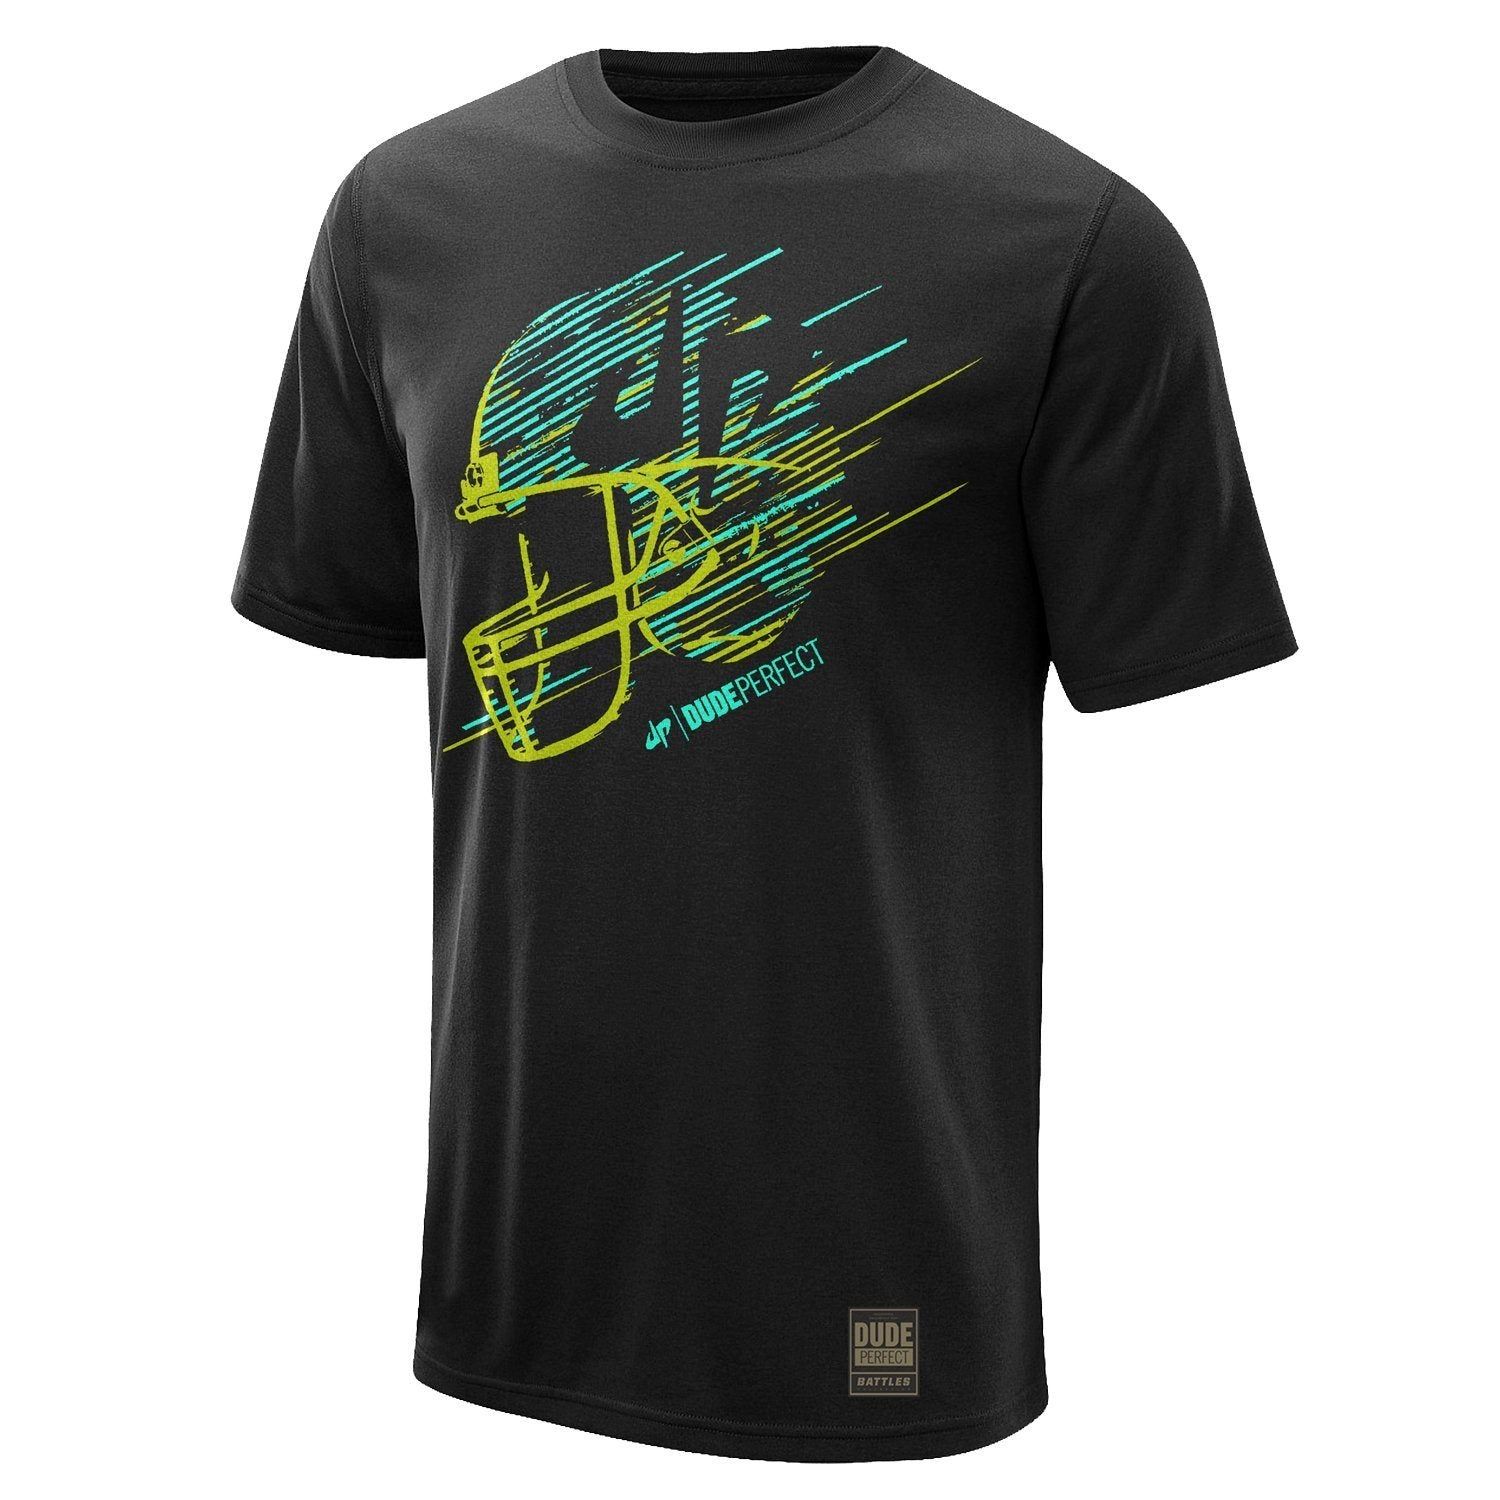 Crushing The Gridiron II Performance Tee